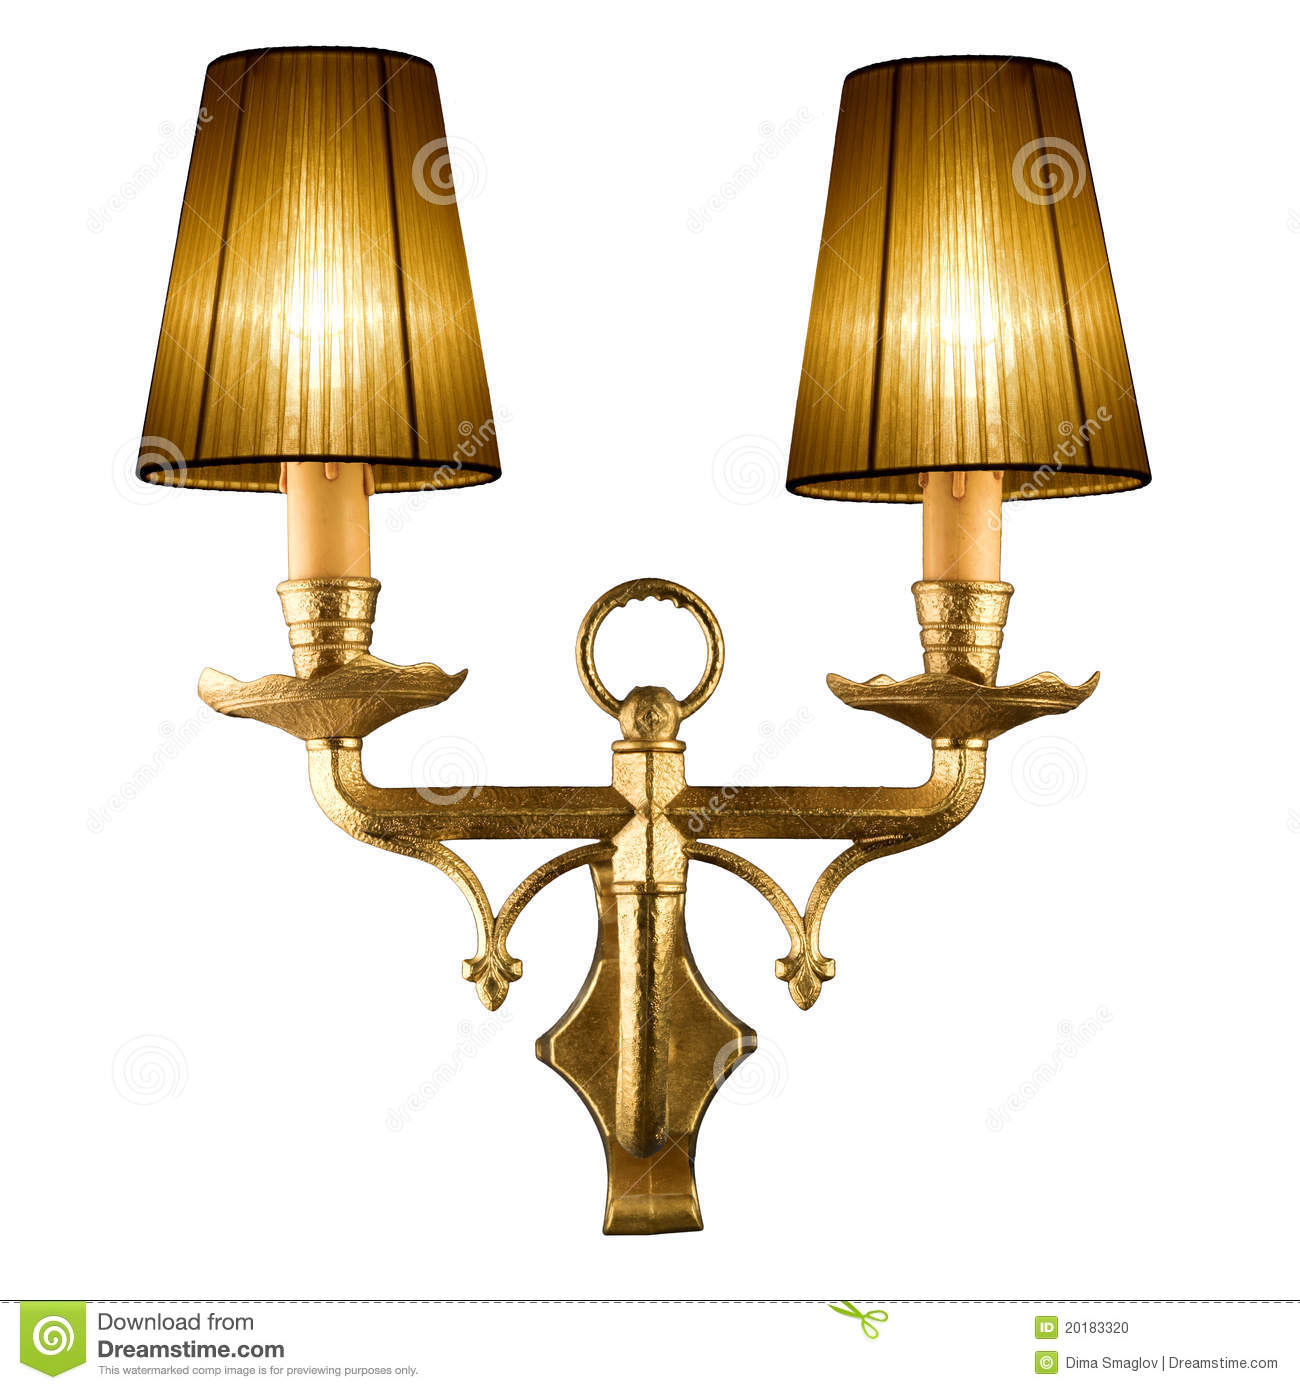 Vintage Wall Lamp Stock Photo - Image: 20183320